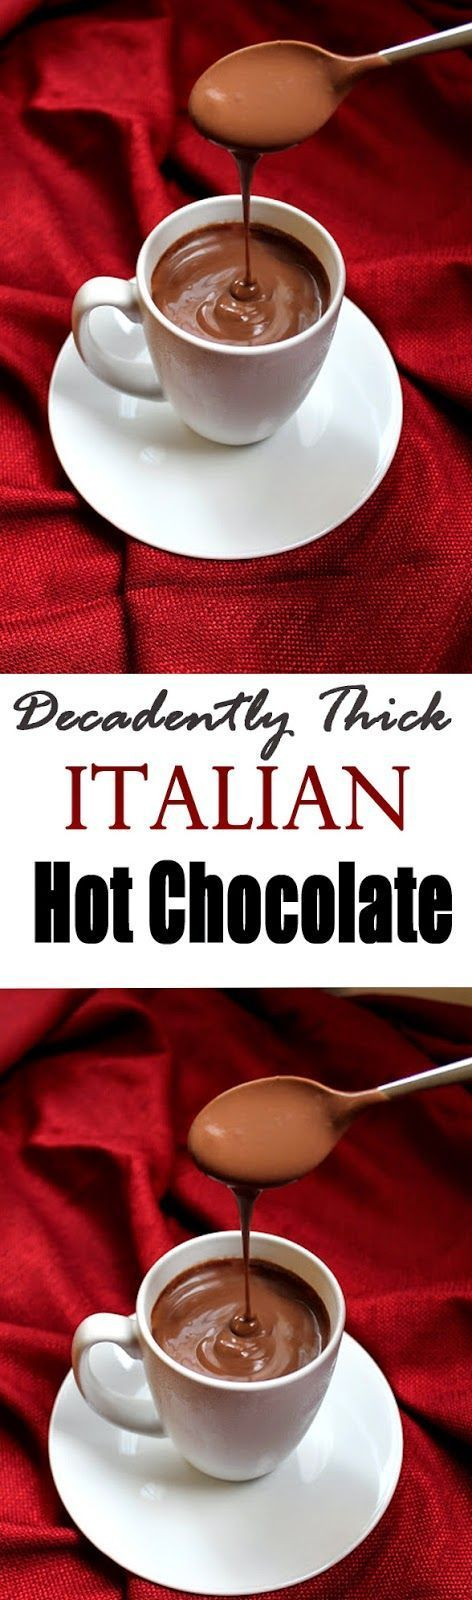 Decadently Thick Italian Hot Chocolate